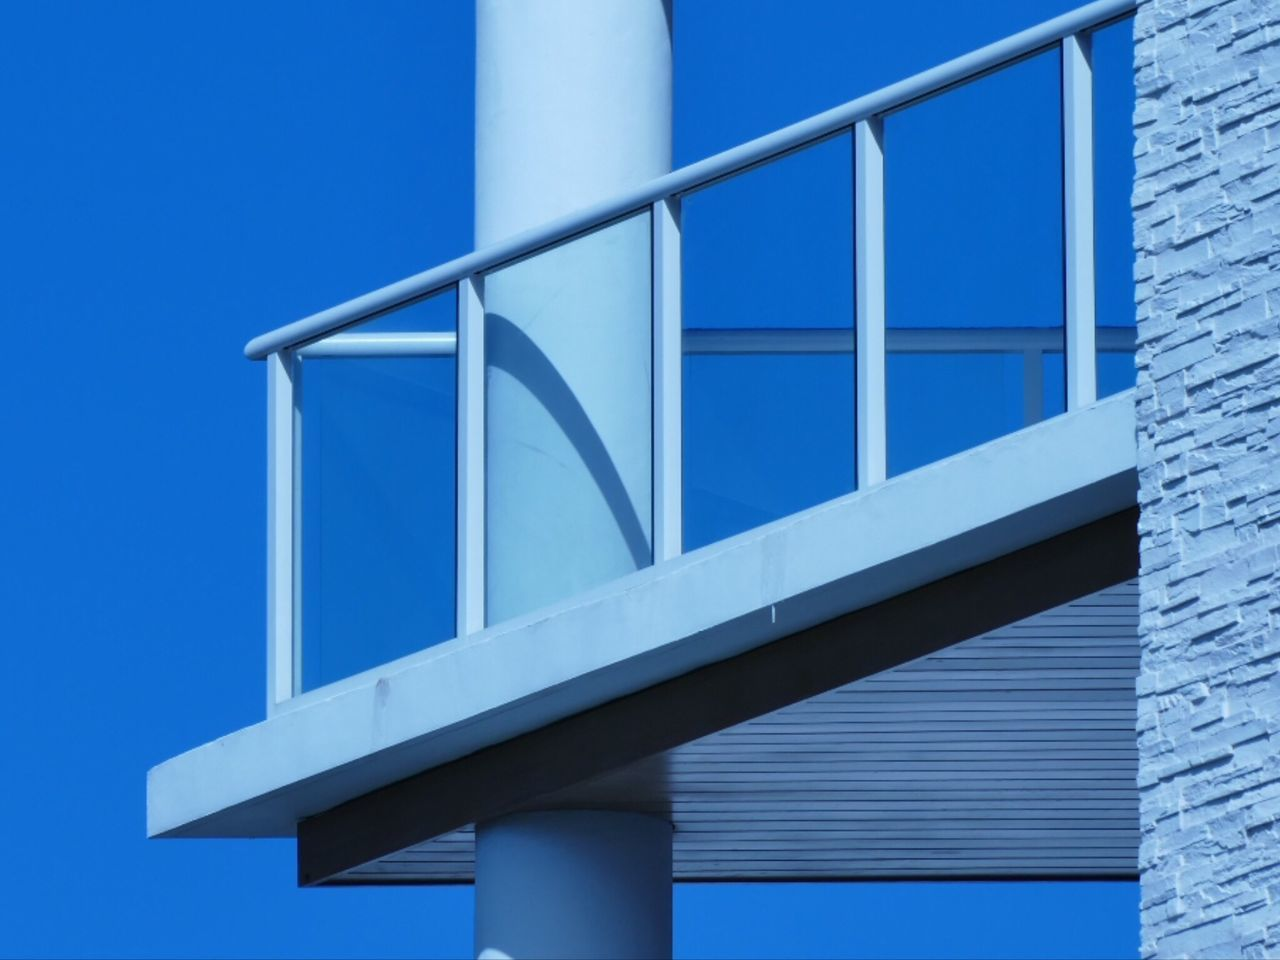 built structure, architecture, blue, low angle view, outdoors, building exterior, metal, day, bridge - man made structure, no people, clear sky, sky, close-up